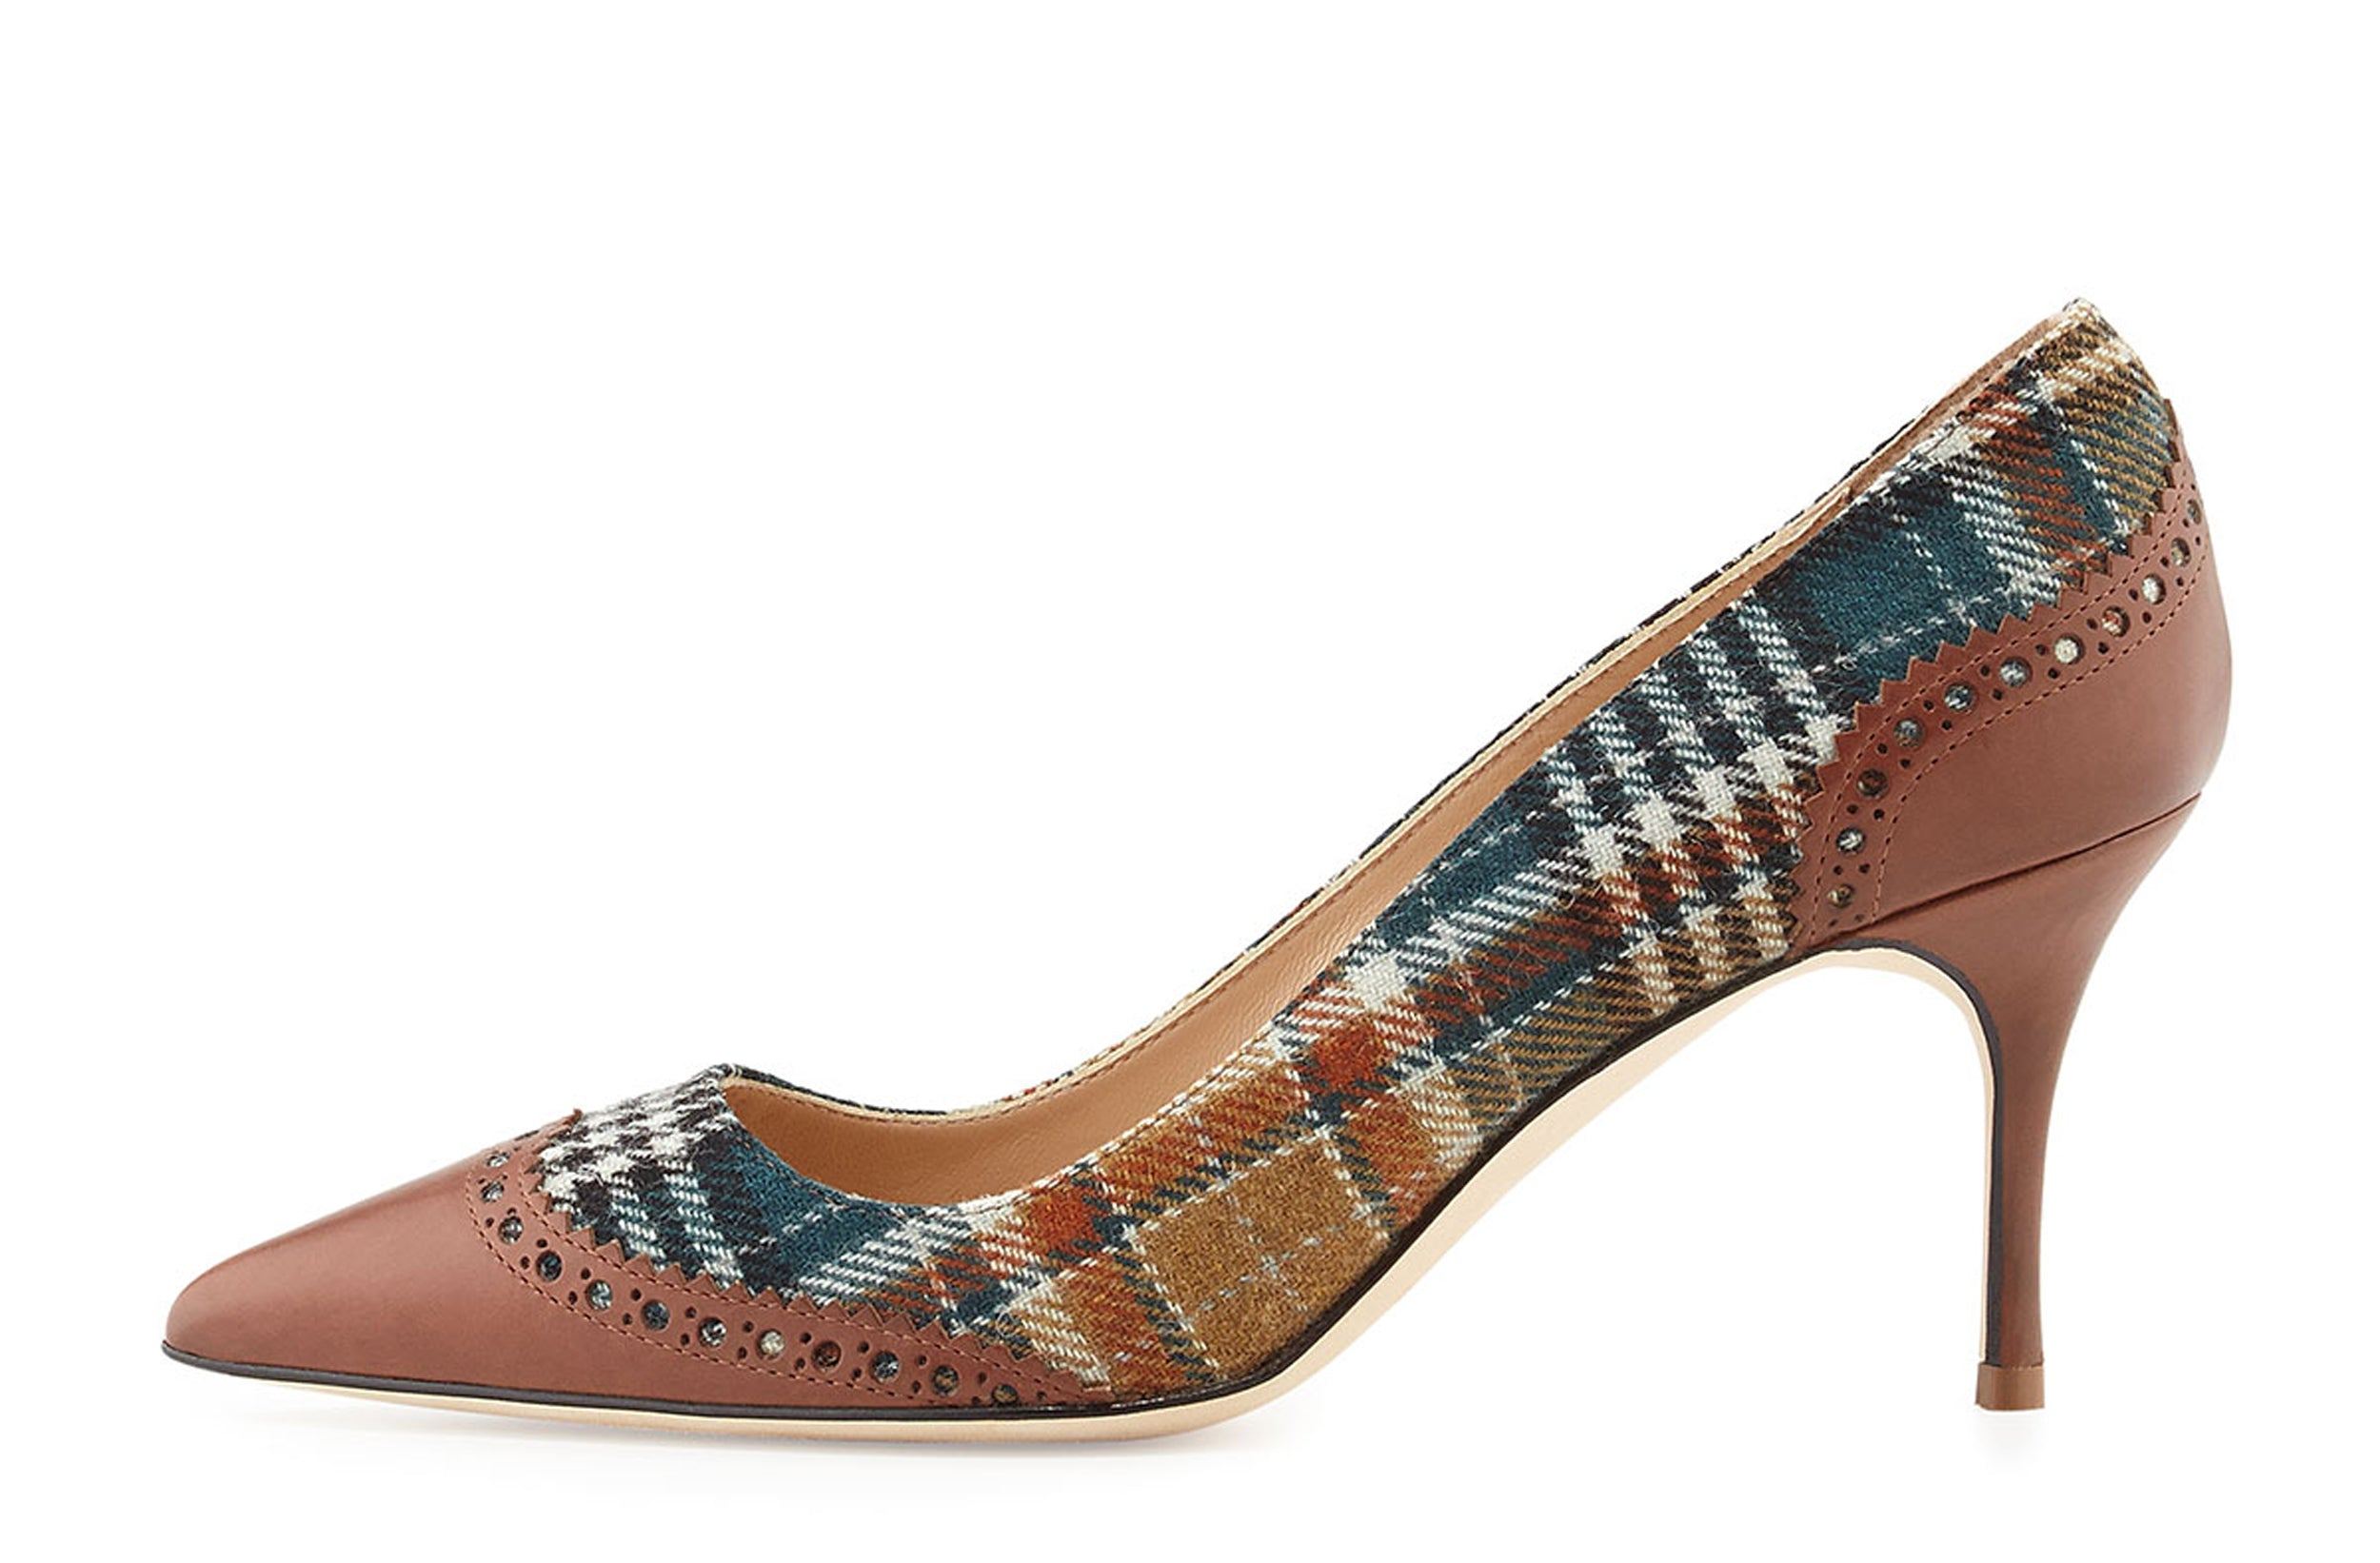 87859aa6d2 MANOLO BLAHNIK 41 Plaid and Brown Leather Ancor Wingtip Pumps Heels 10 –  LaLaStyle